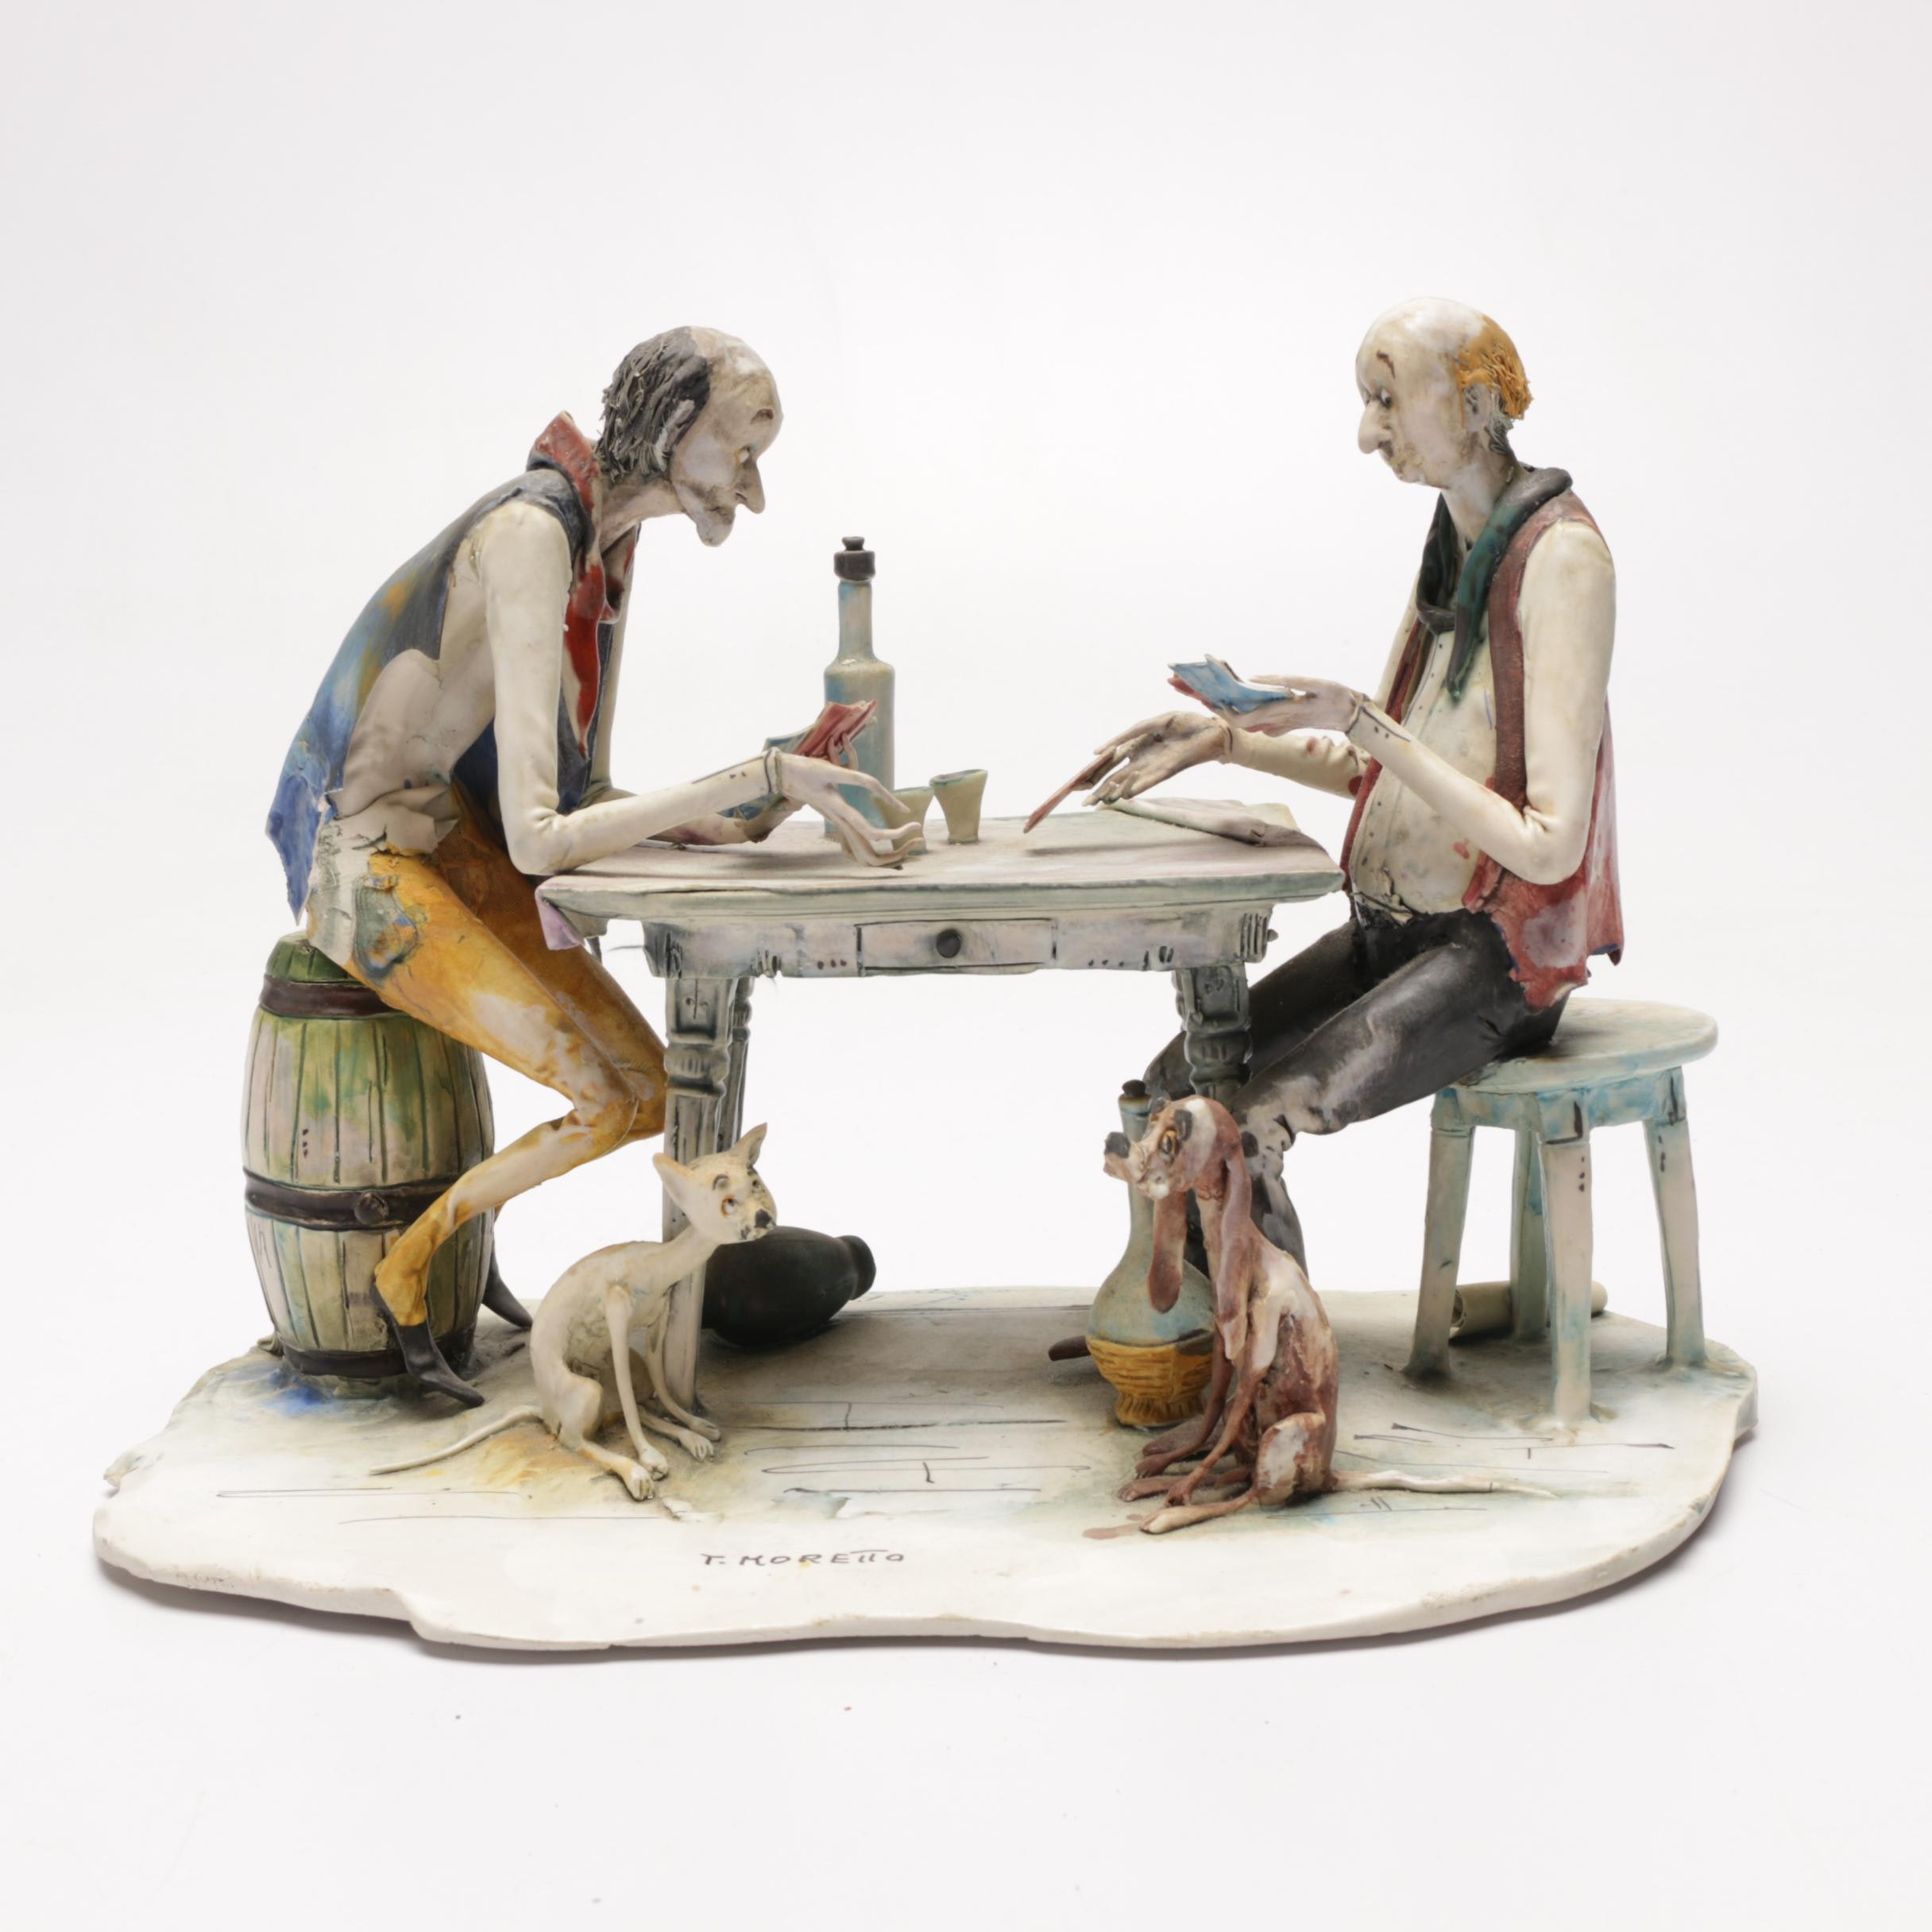 Italian Ceramic Figurine of Men Playing Cards by Toni Moretto